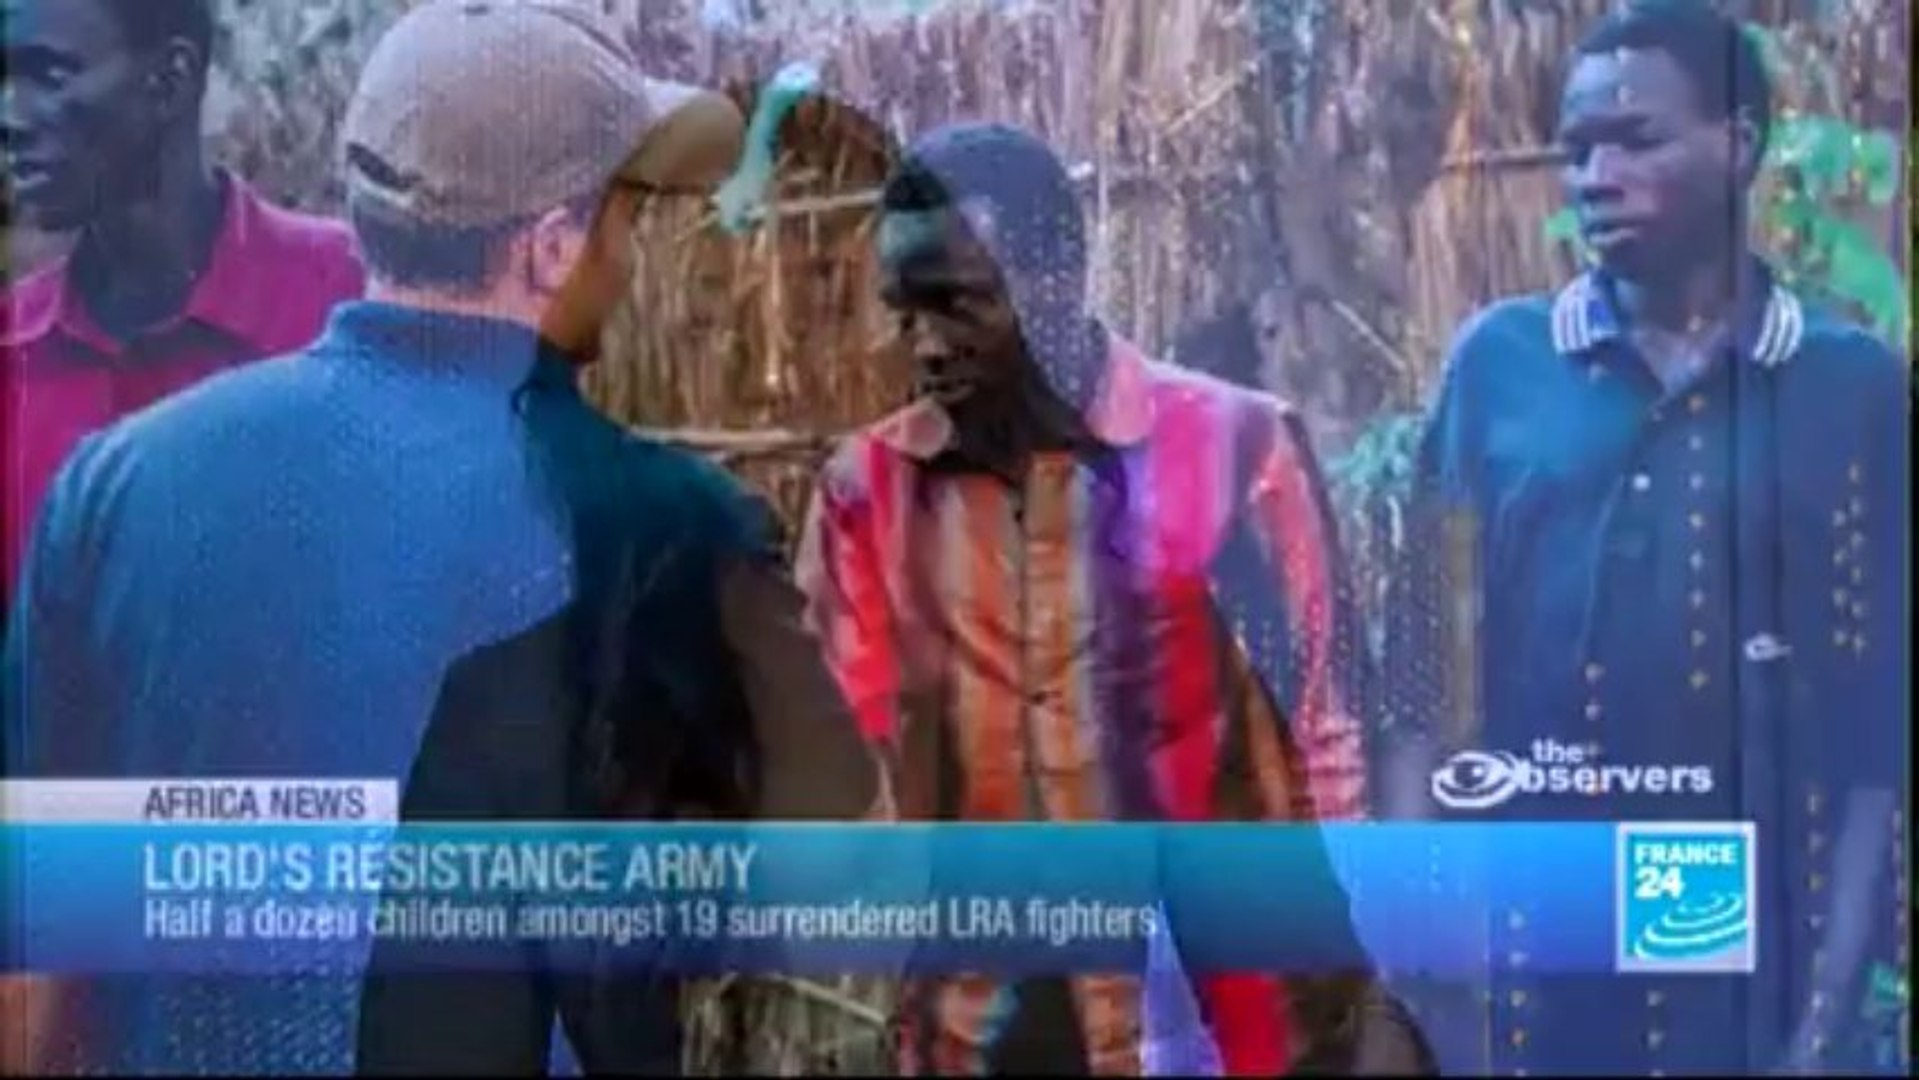 AFRICA NEWS - Senegalese sculptor joins France's 'artocracy'